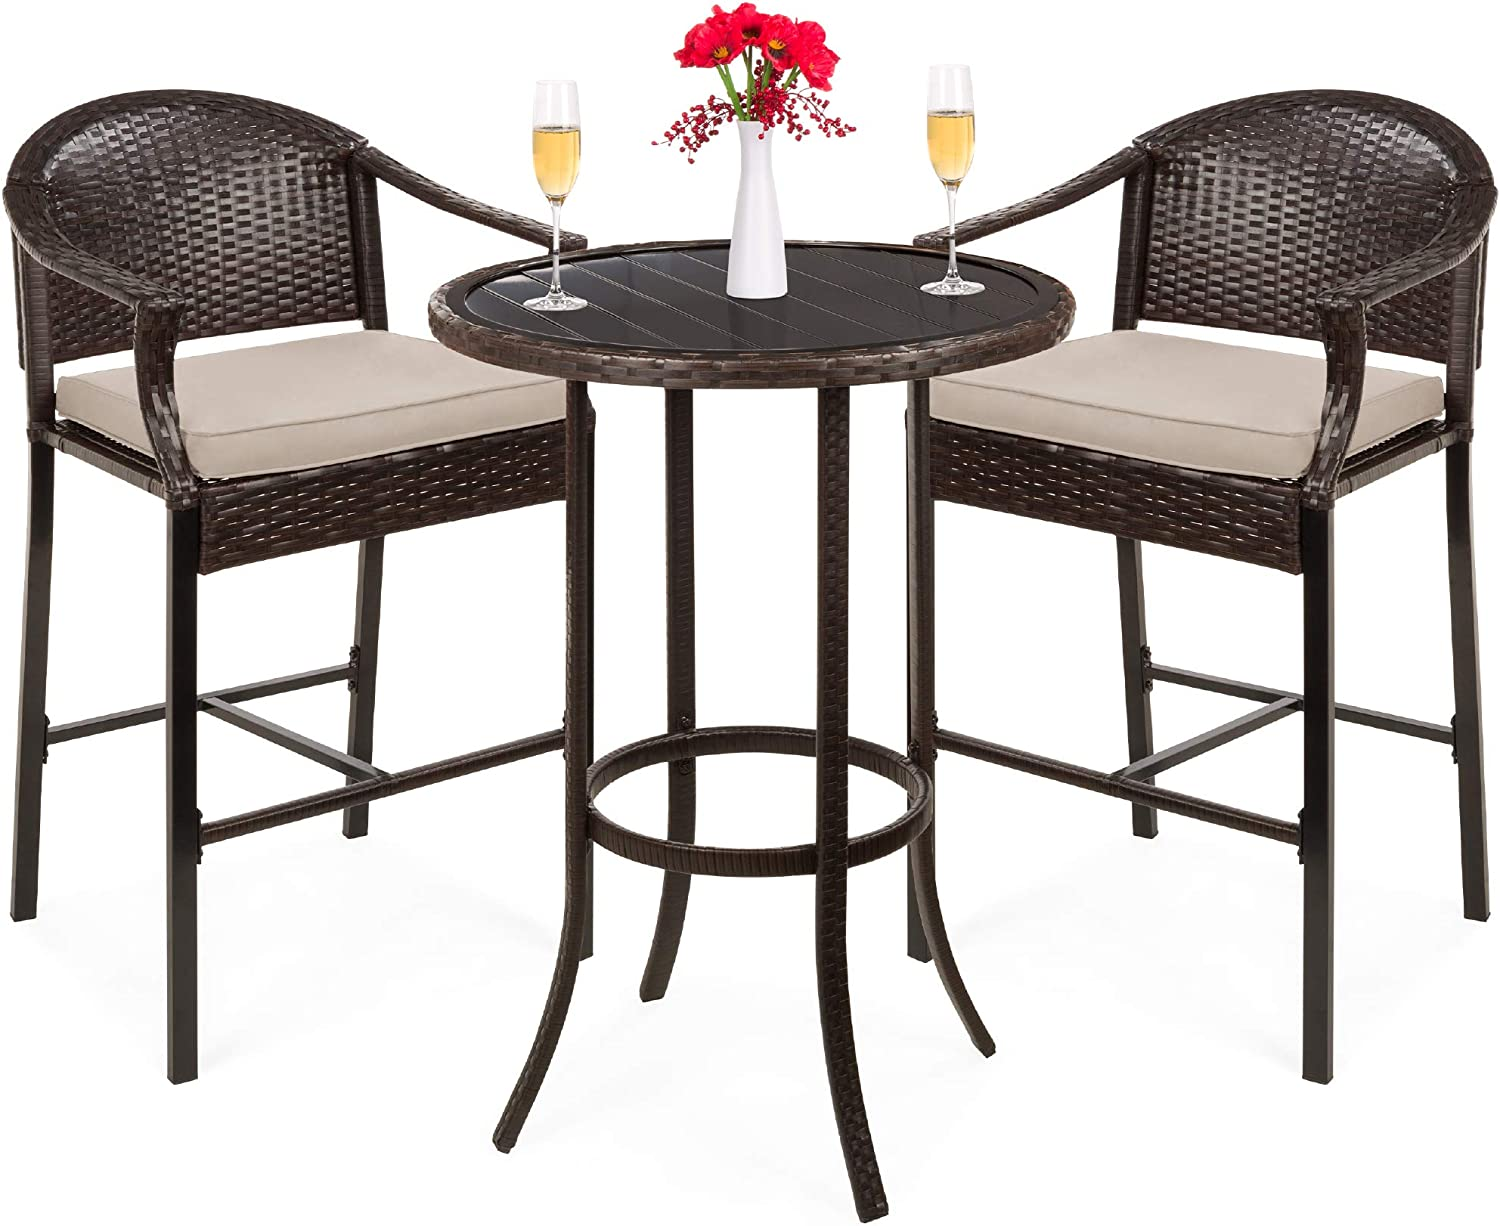 Amazon Com Best Choice Products 3 Piece Outdoor Wicker Bistro Bar Height Table Set For Patio Poolside Porch Deck Backyard Garden W Barstools Footrests Cushions Steel Frame Beige Garden Outdoor